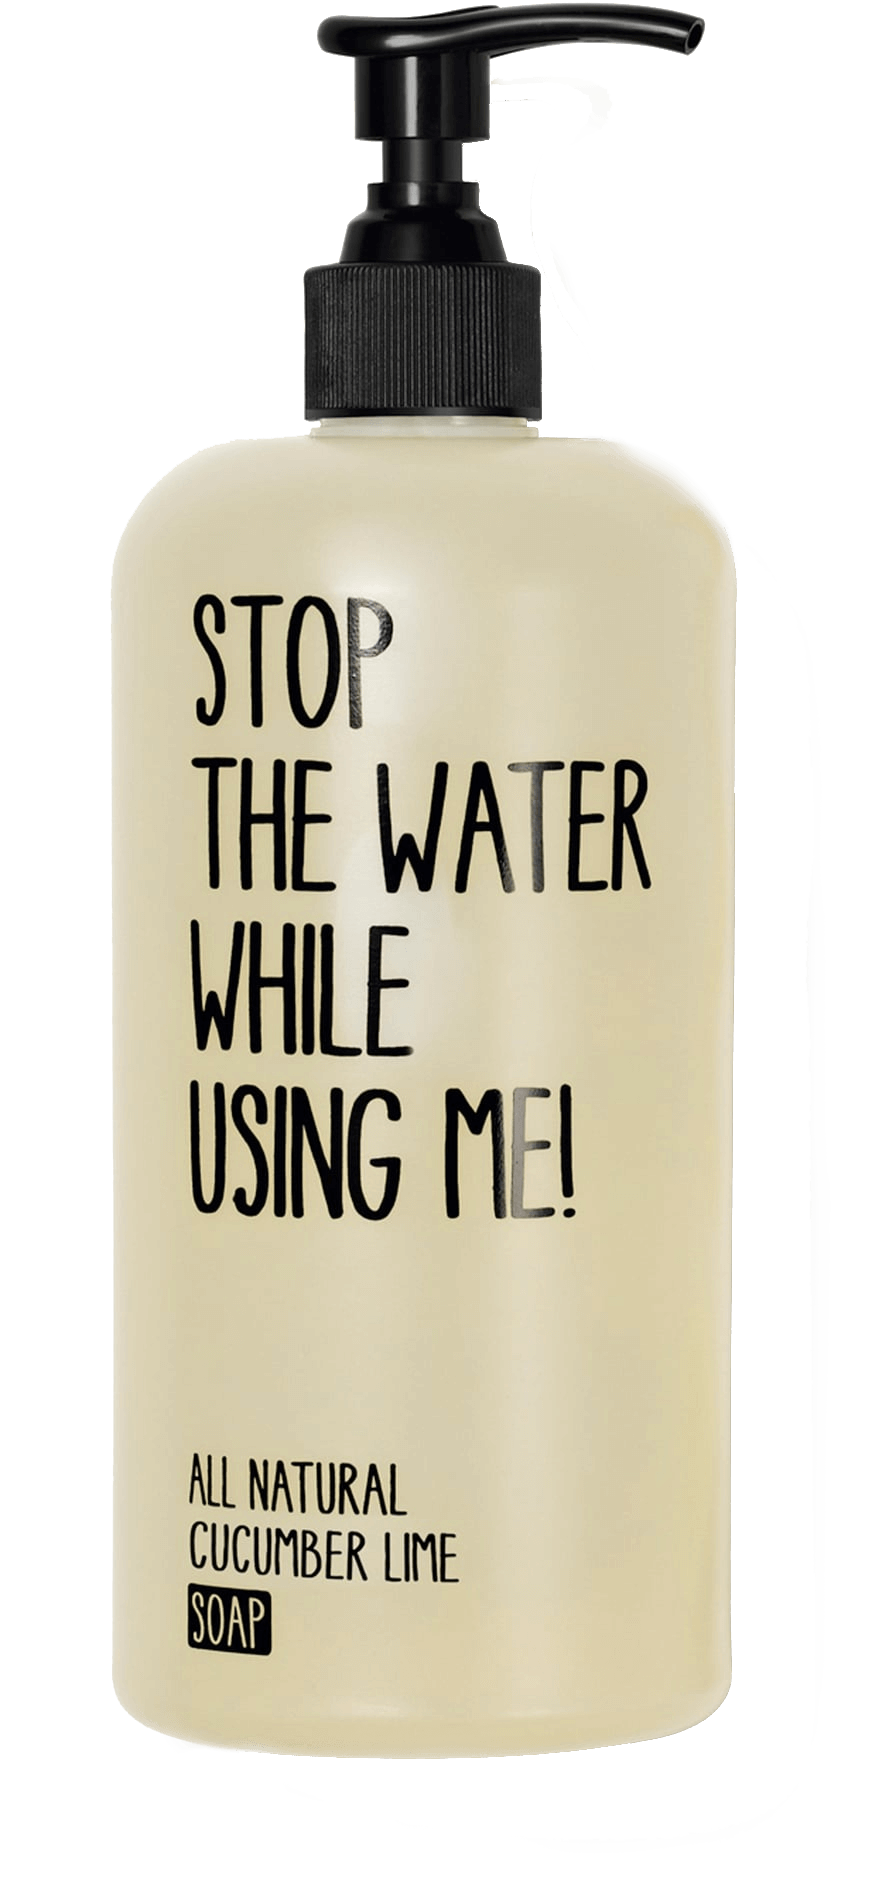 stopwater_bottle_noshadow